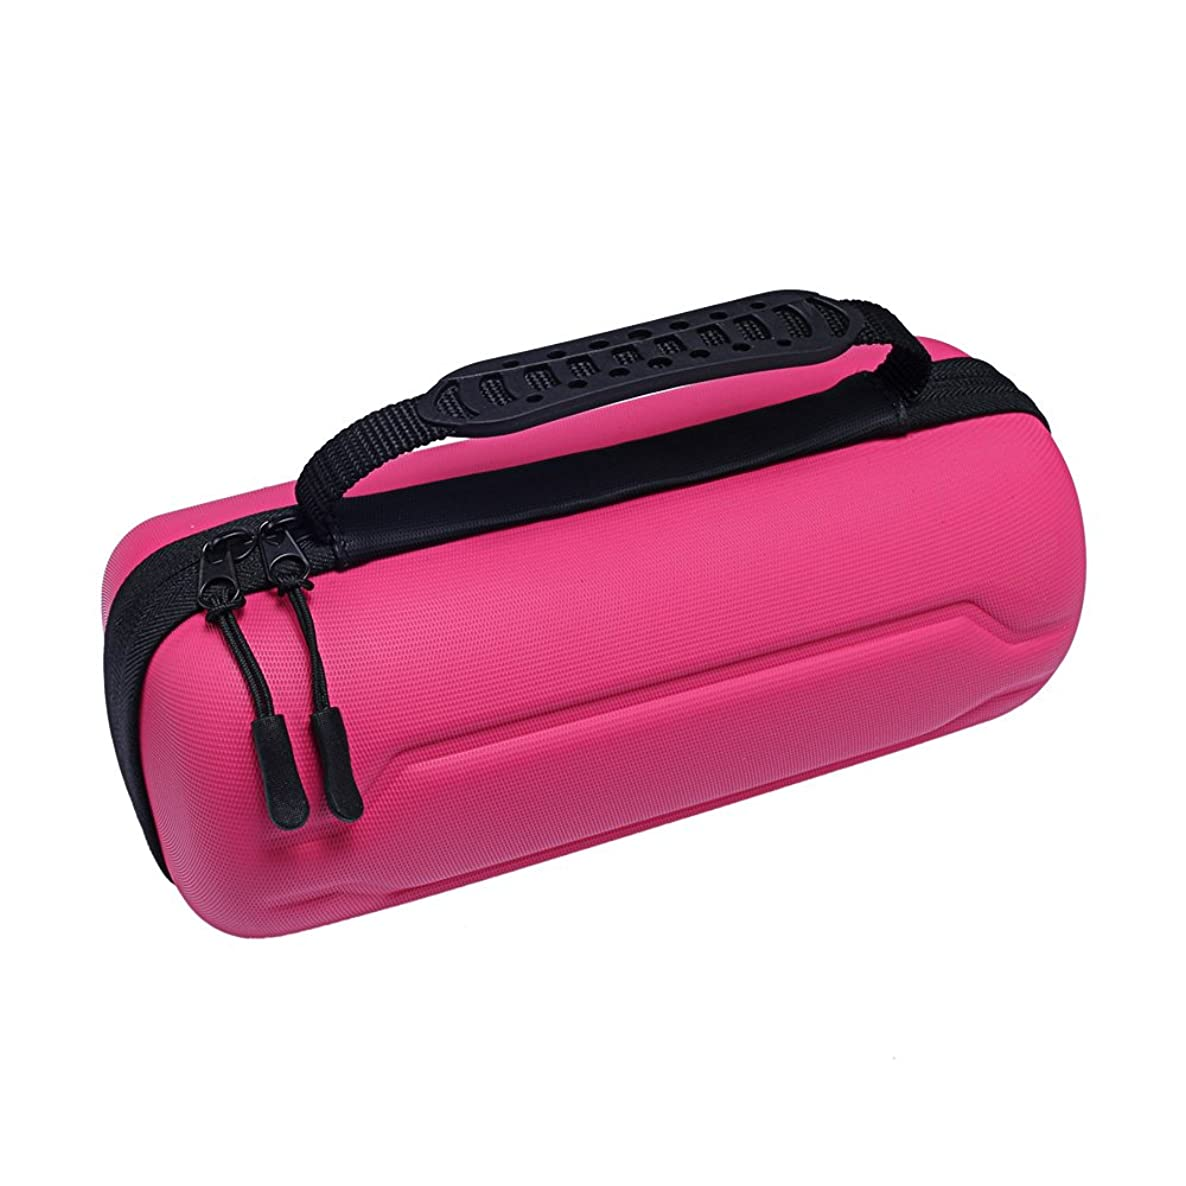 Esimen 2018 Design Hard Case for Case For Amazon All-new Echo (2nd Generation) - Extra Room for USB Cable and Wall Charger (Pink for New Echo)